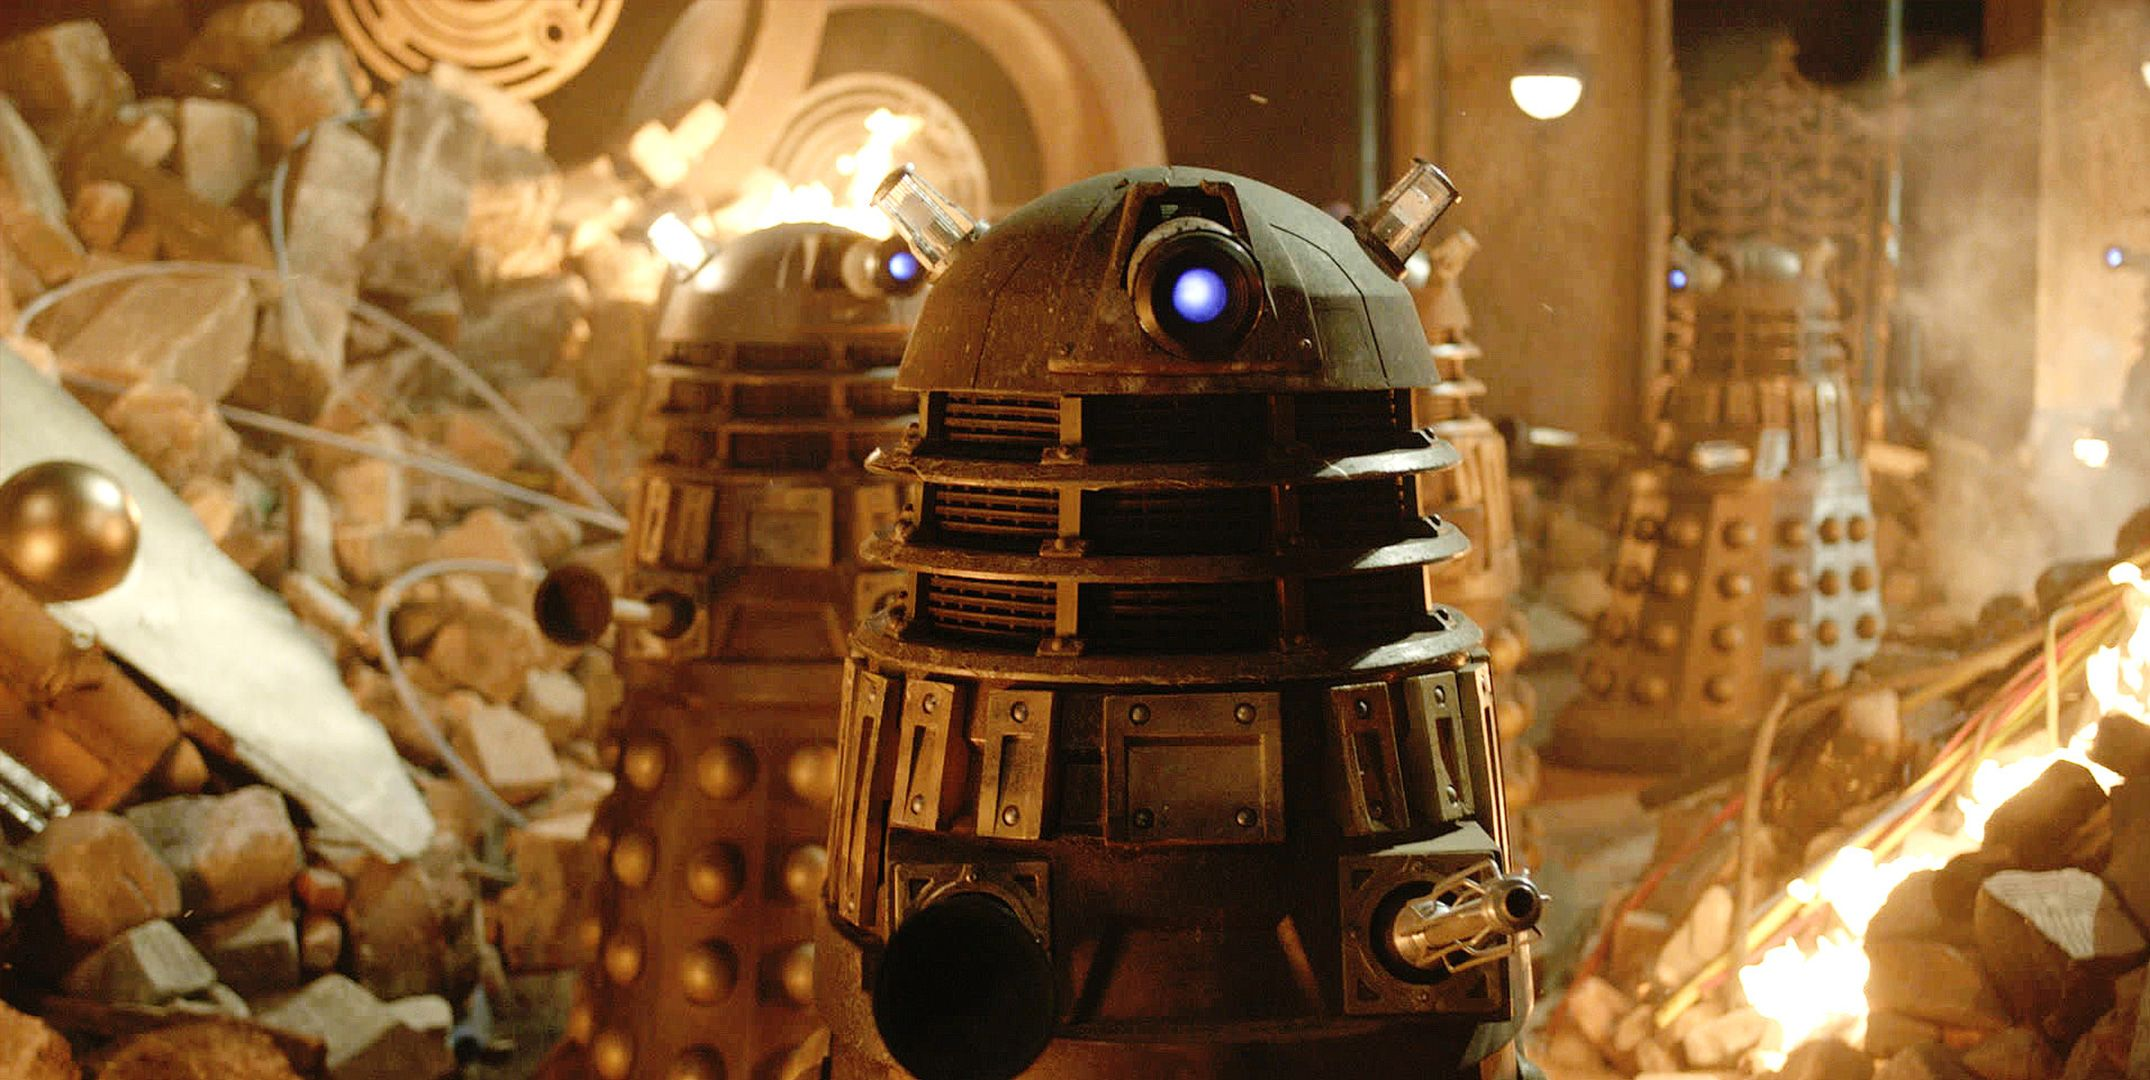 Doctor Who showrunner tells fans not to expect Daleks in series 12